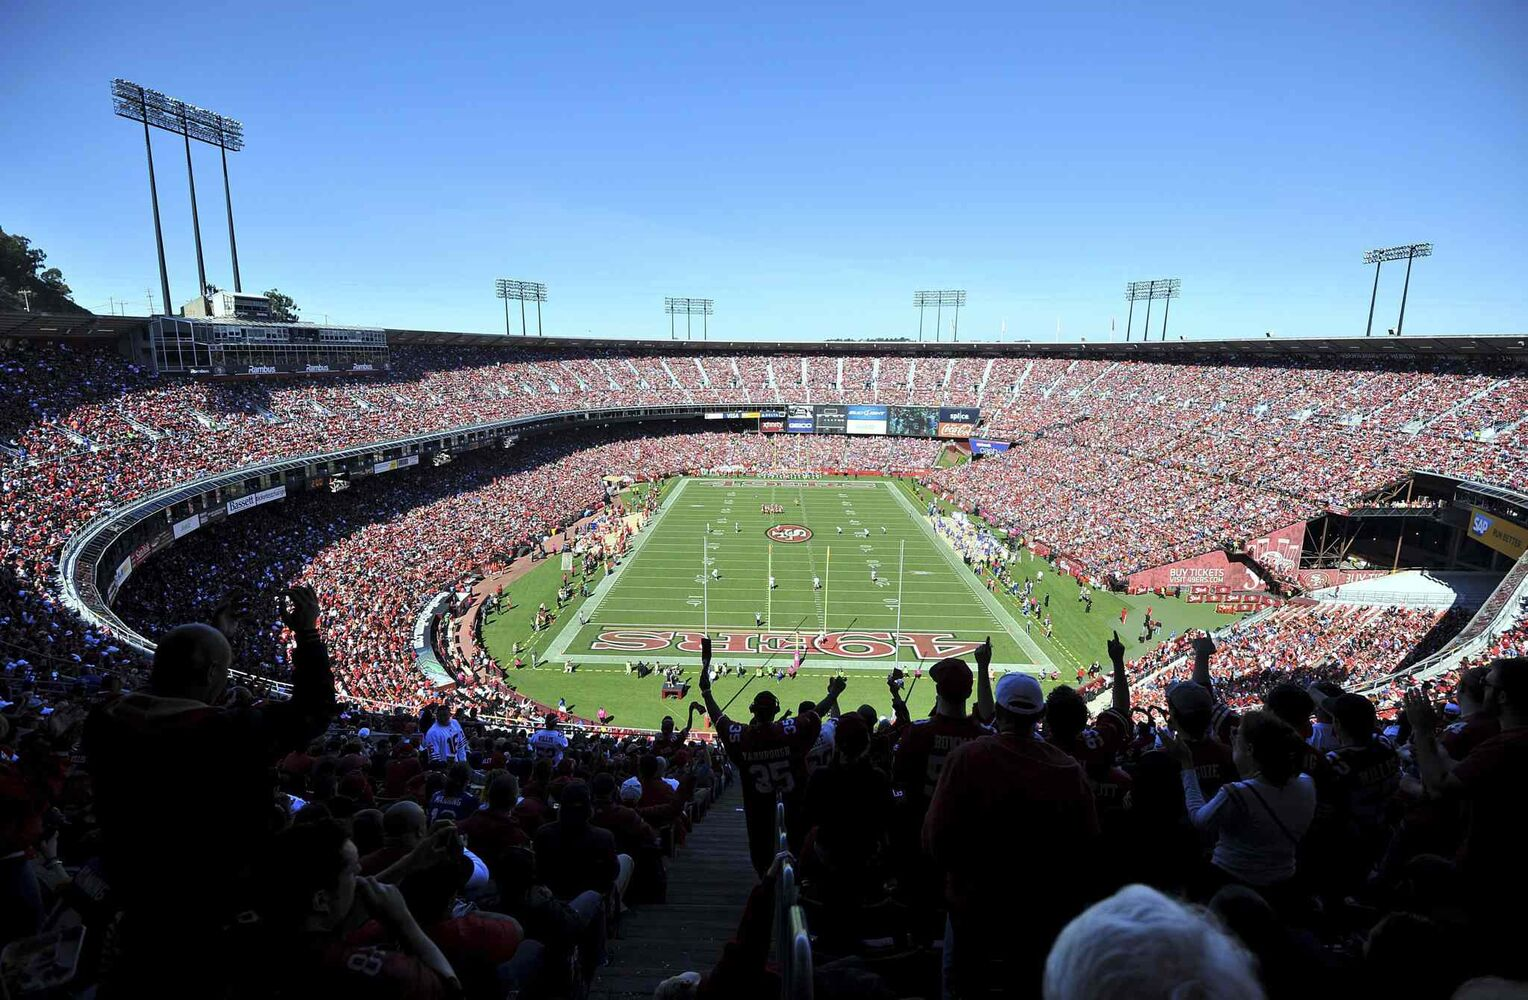 This Oct. 14, 2012 file photo shows fans cheering at Candlestick Park during the first half of an NFL football game between the San Francisco 49ers and the New York Giants. (Don Feria / The Associated Press files)